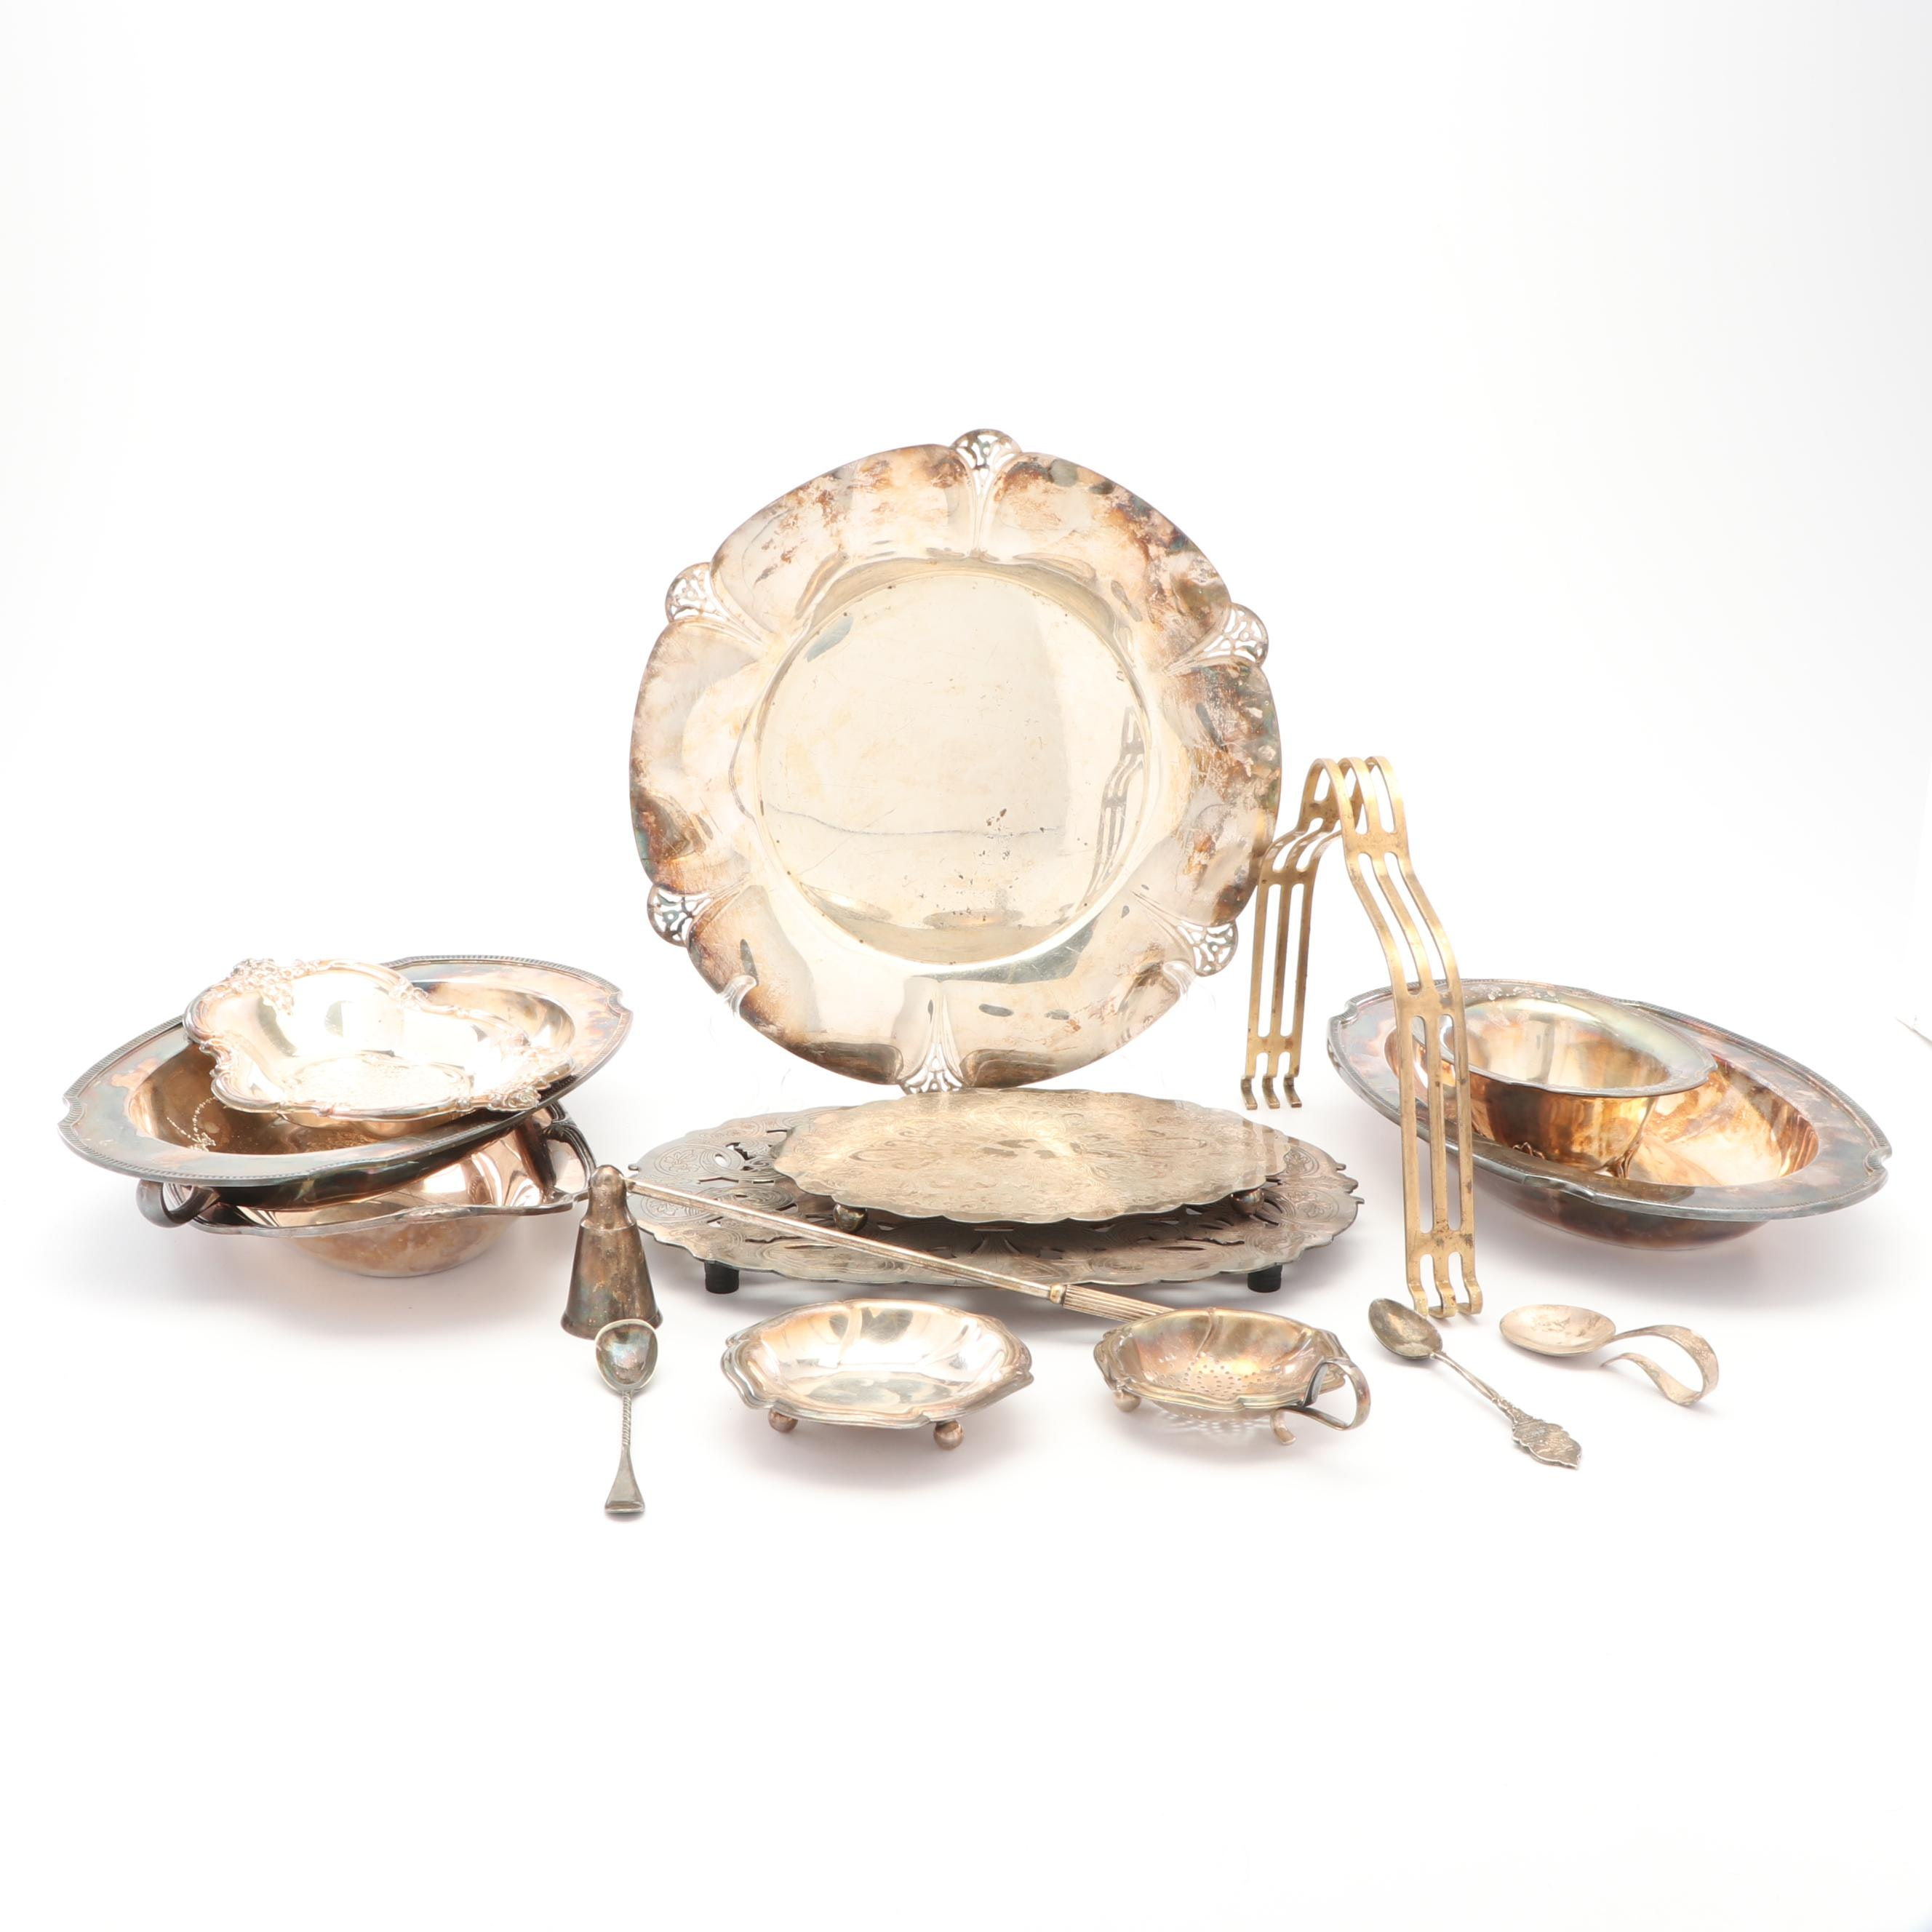 """Rogers """"Moonbeam"""" Vegetable Dish with Other Silver Plate Serveware"""